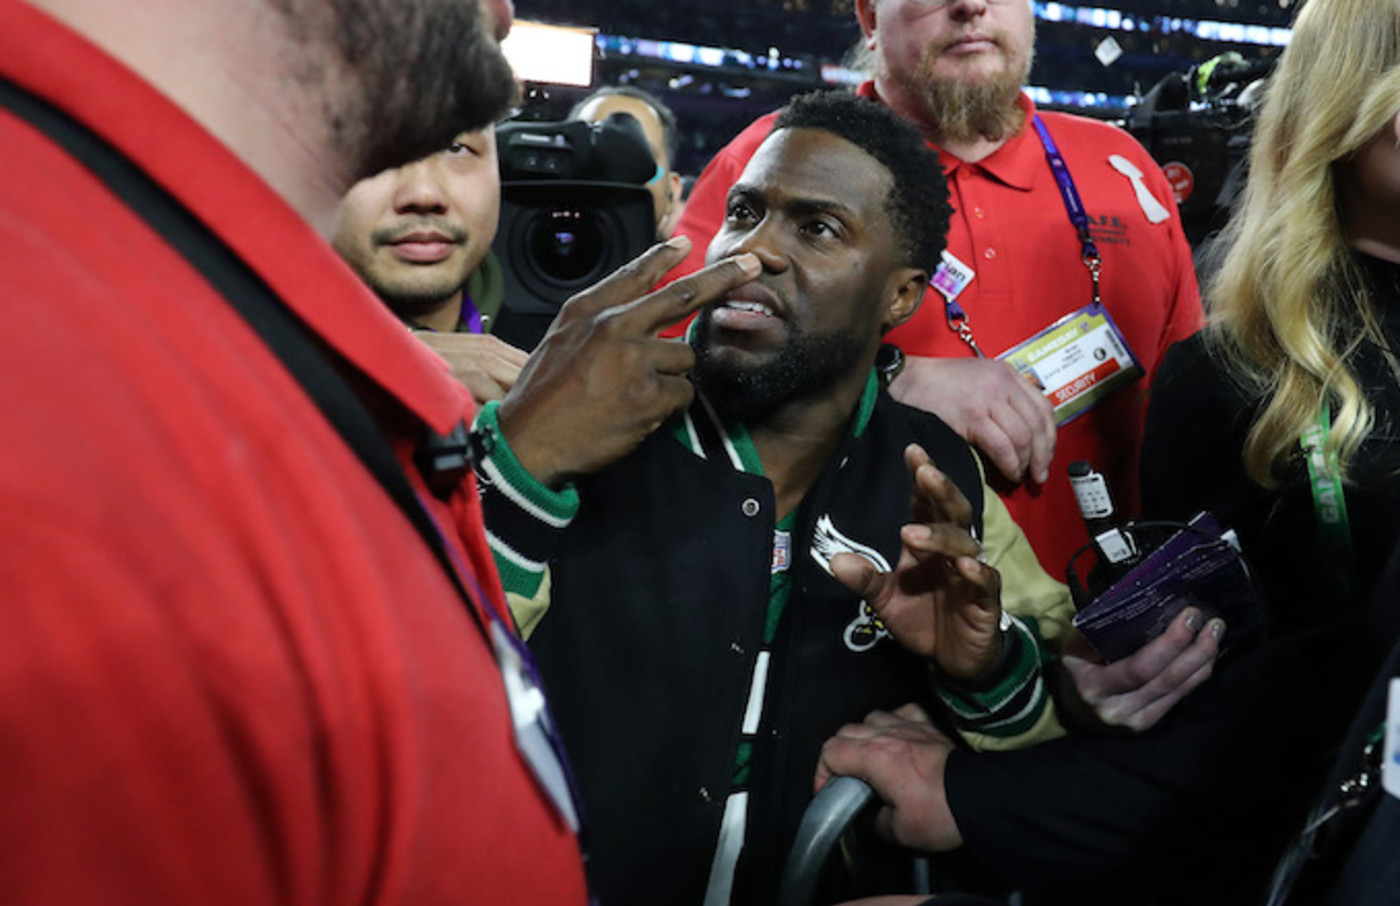 Kevin Hart at the Super Bowl.